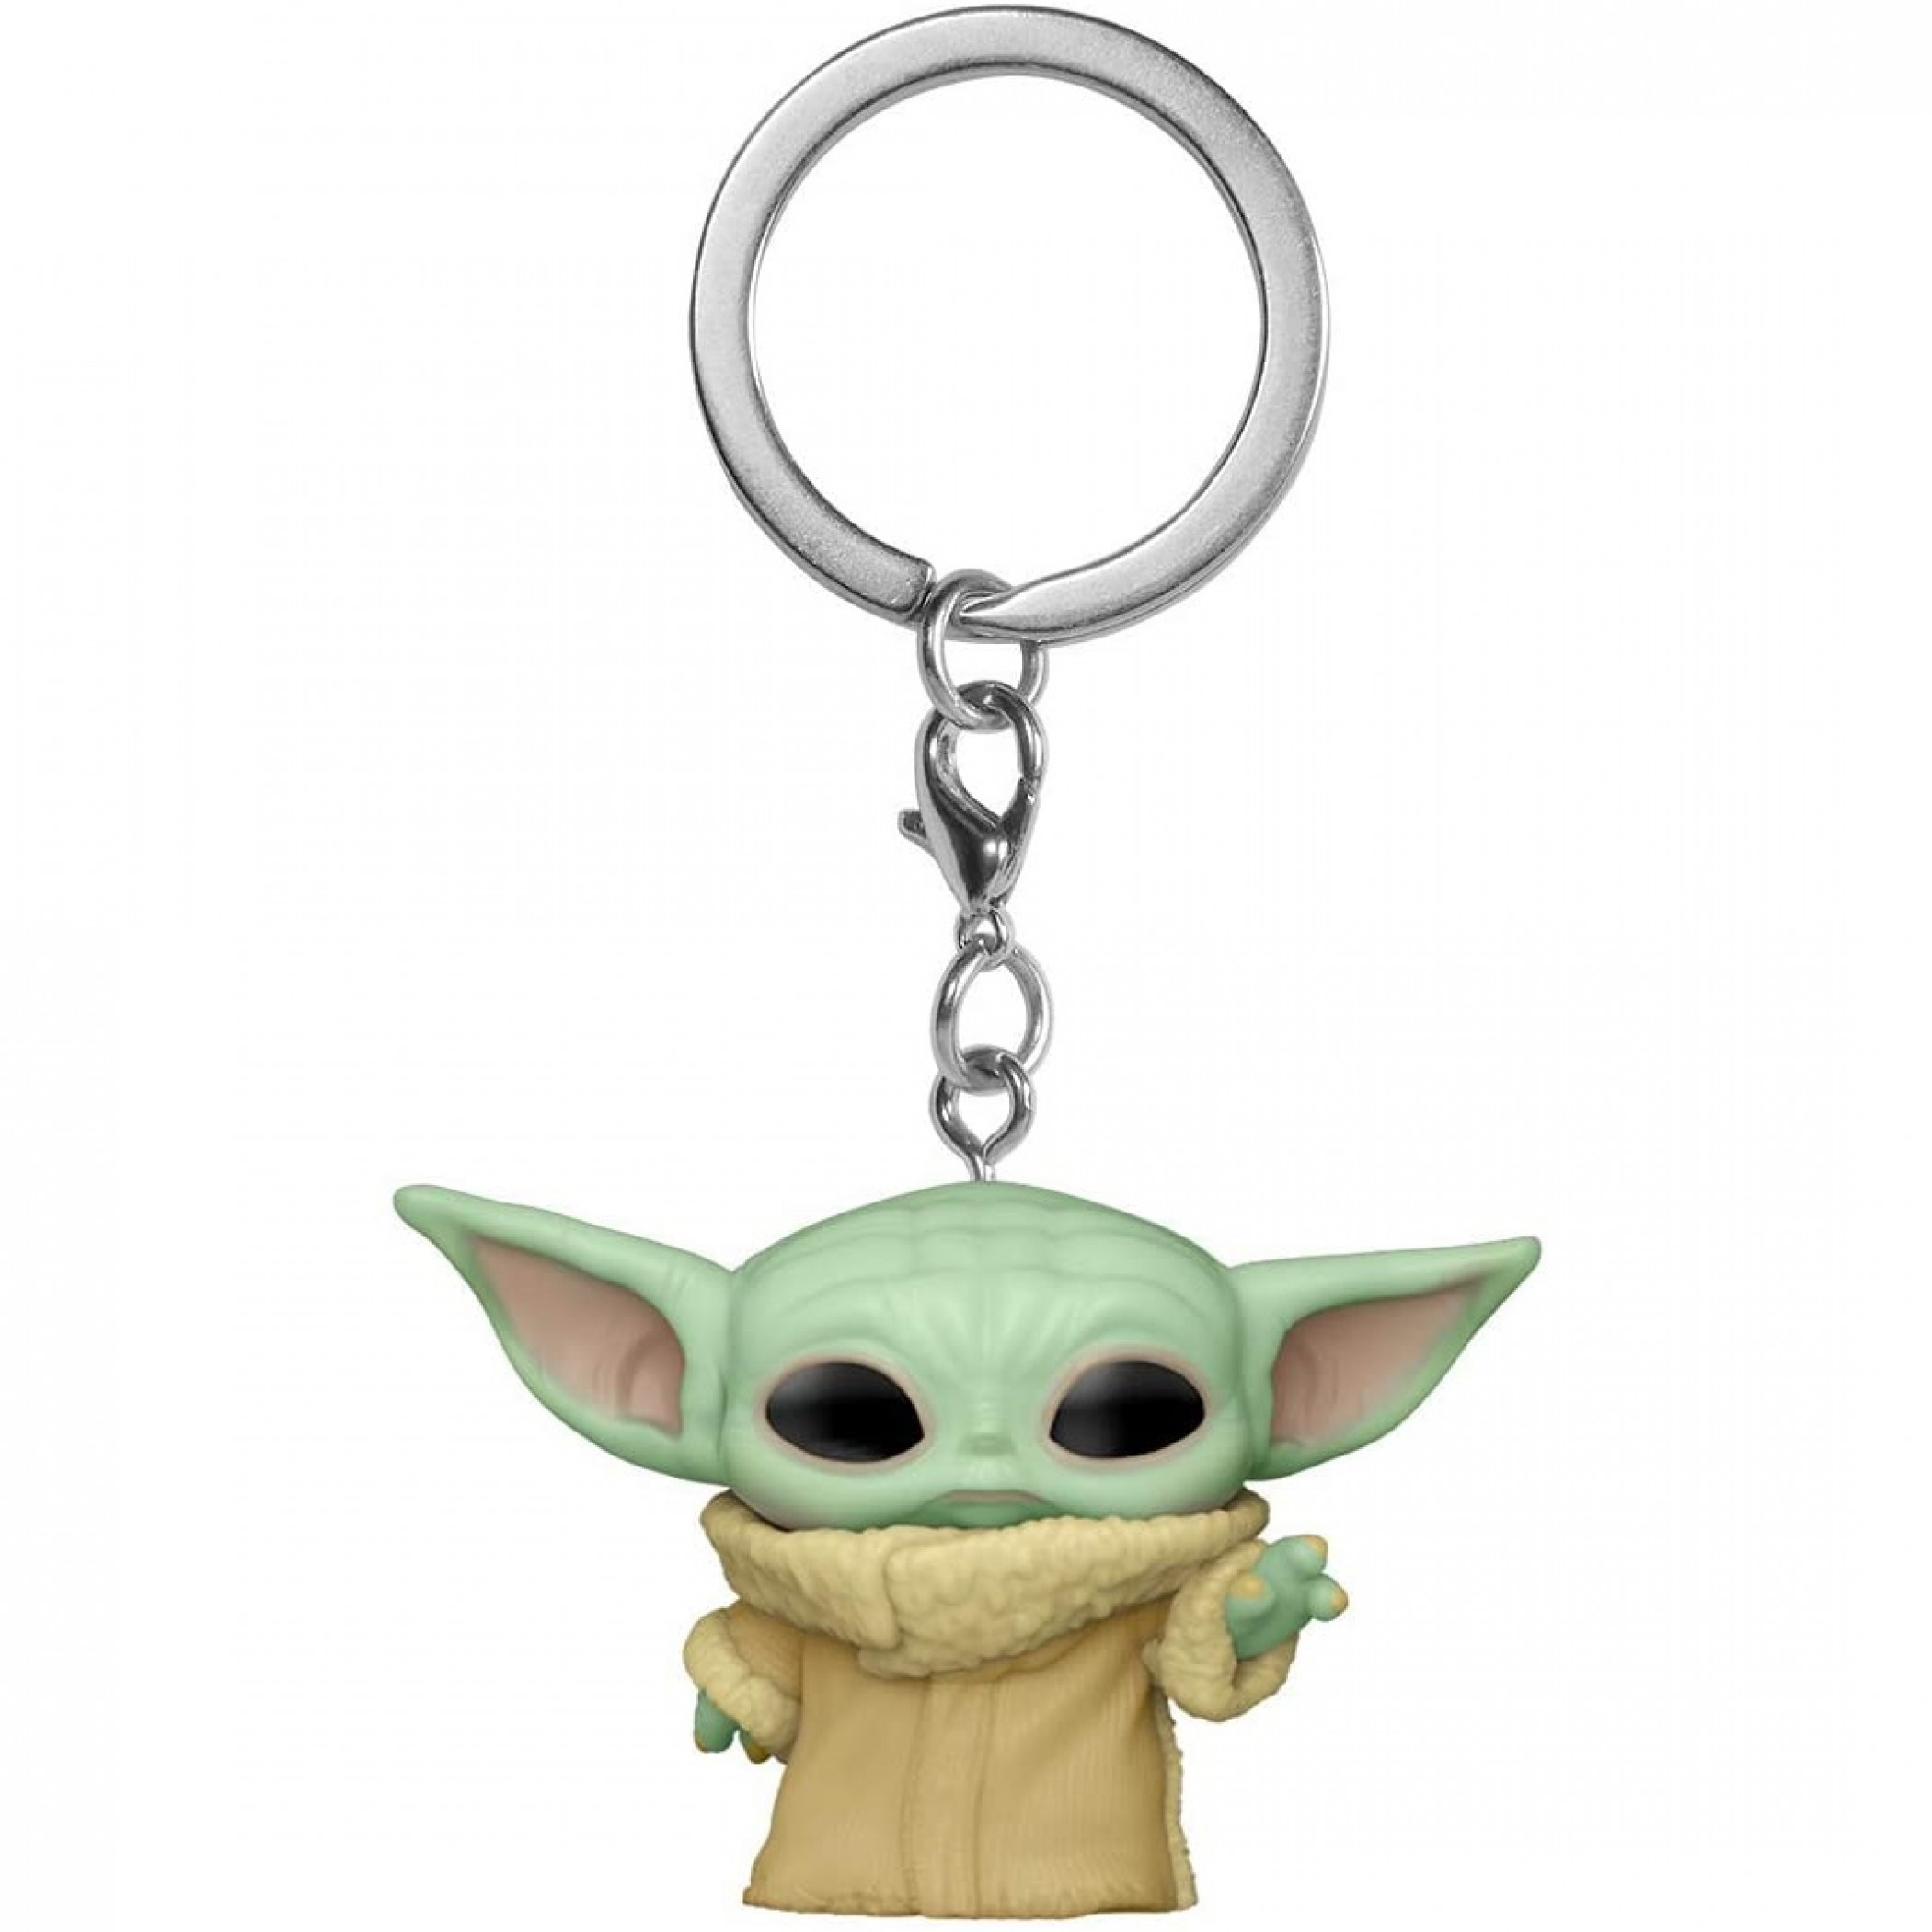 Star Wars The Mandalorian Grogu The Child Funko Pop! Keychain